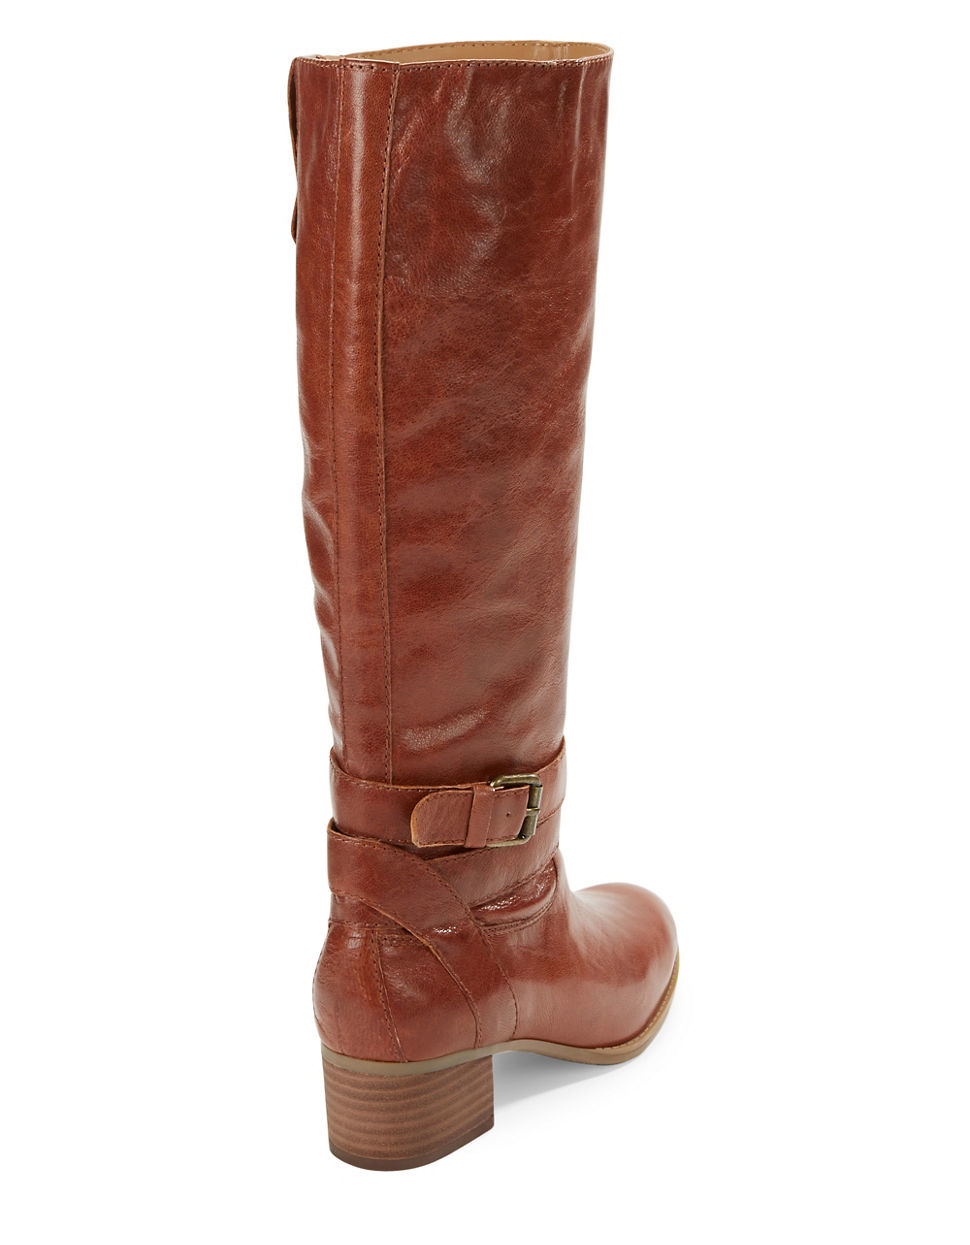 how to clean leather boots naturally